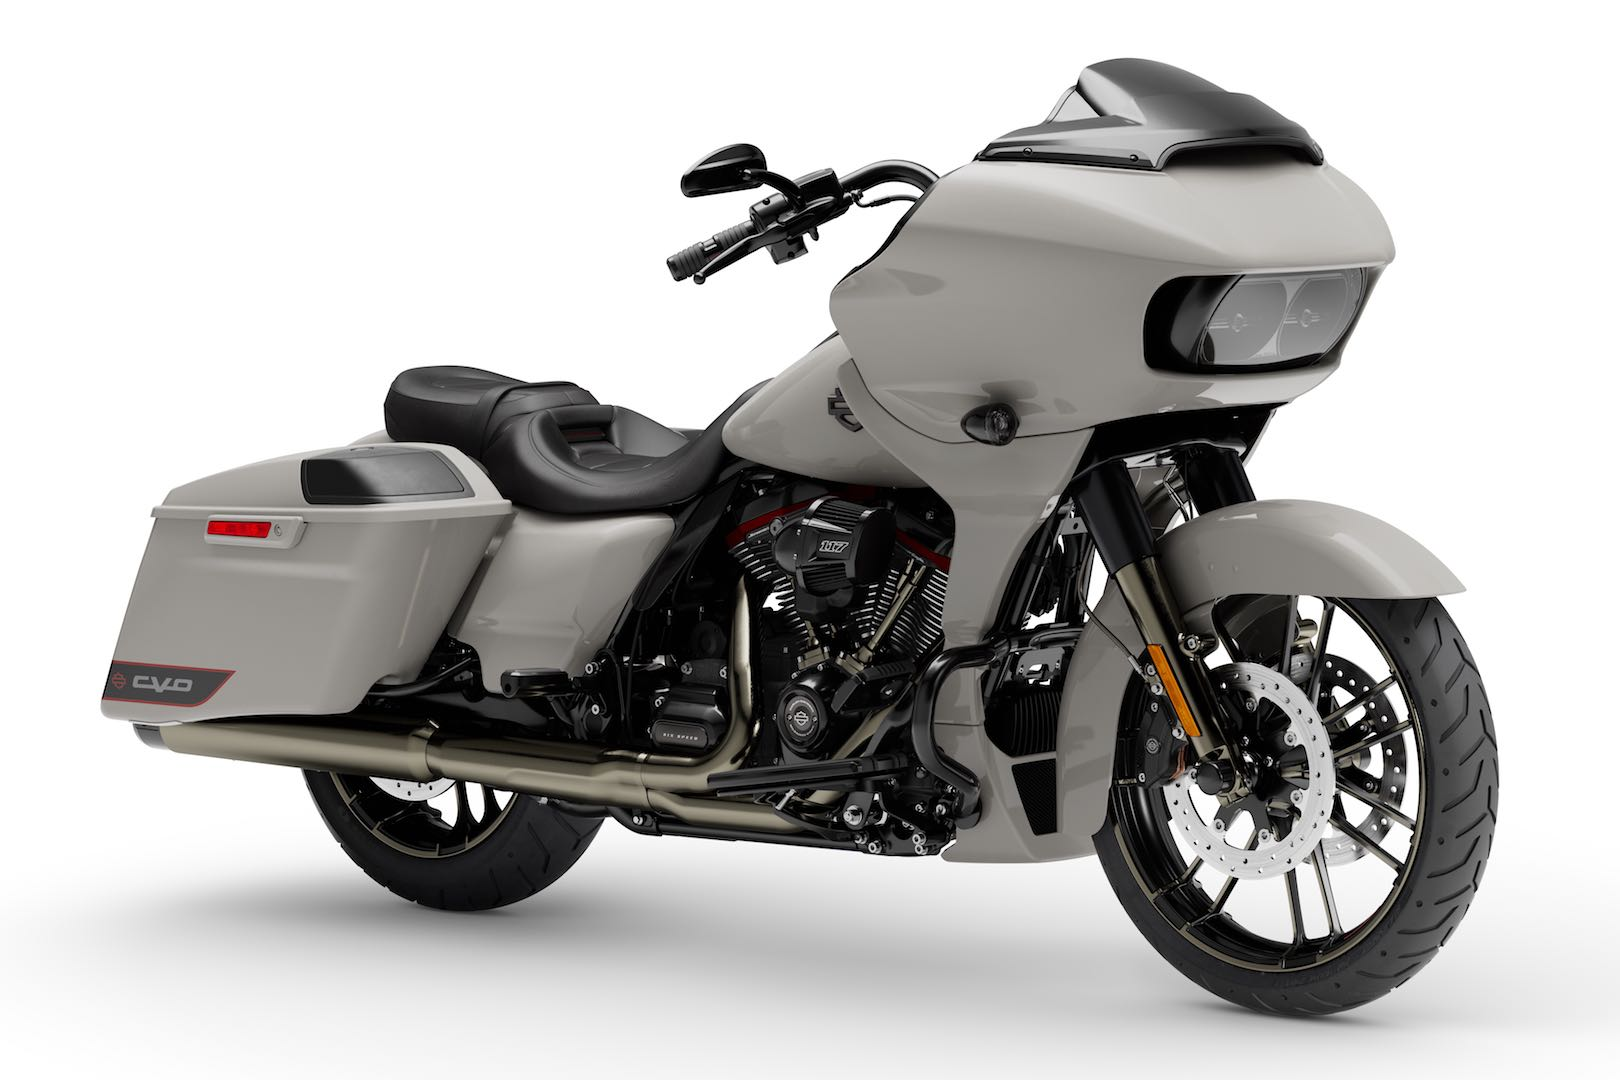 2020 Harley CVO Road Glide price